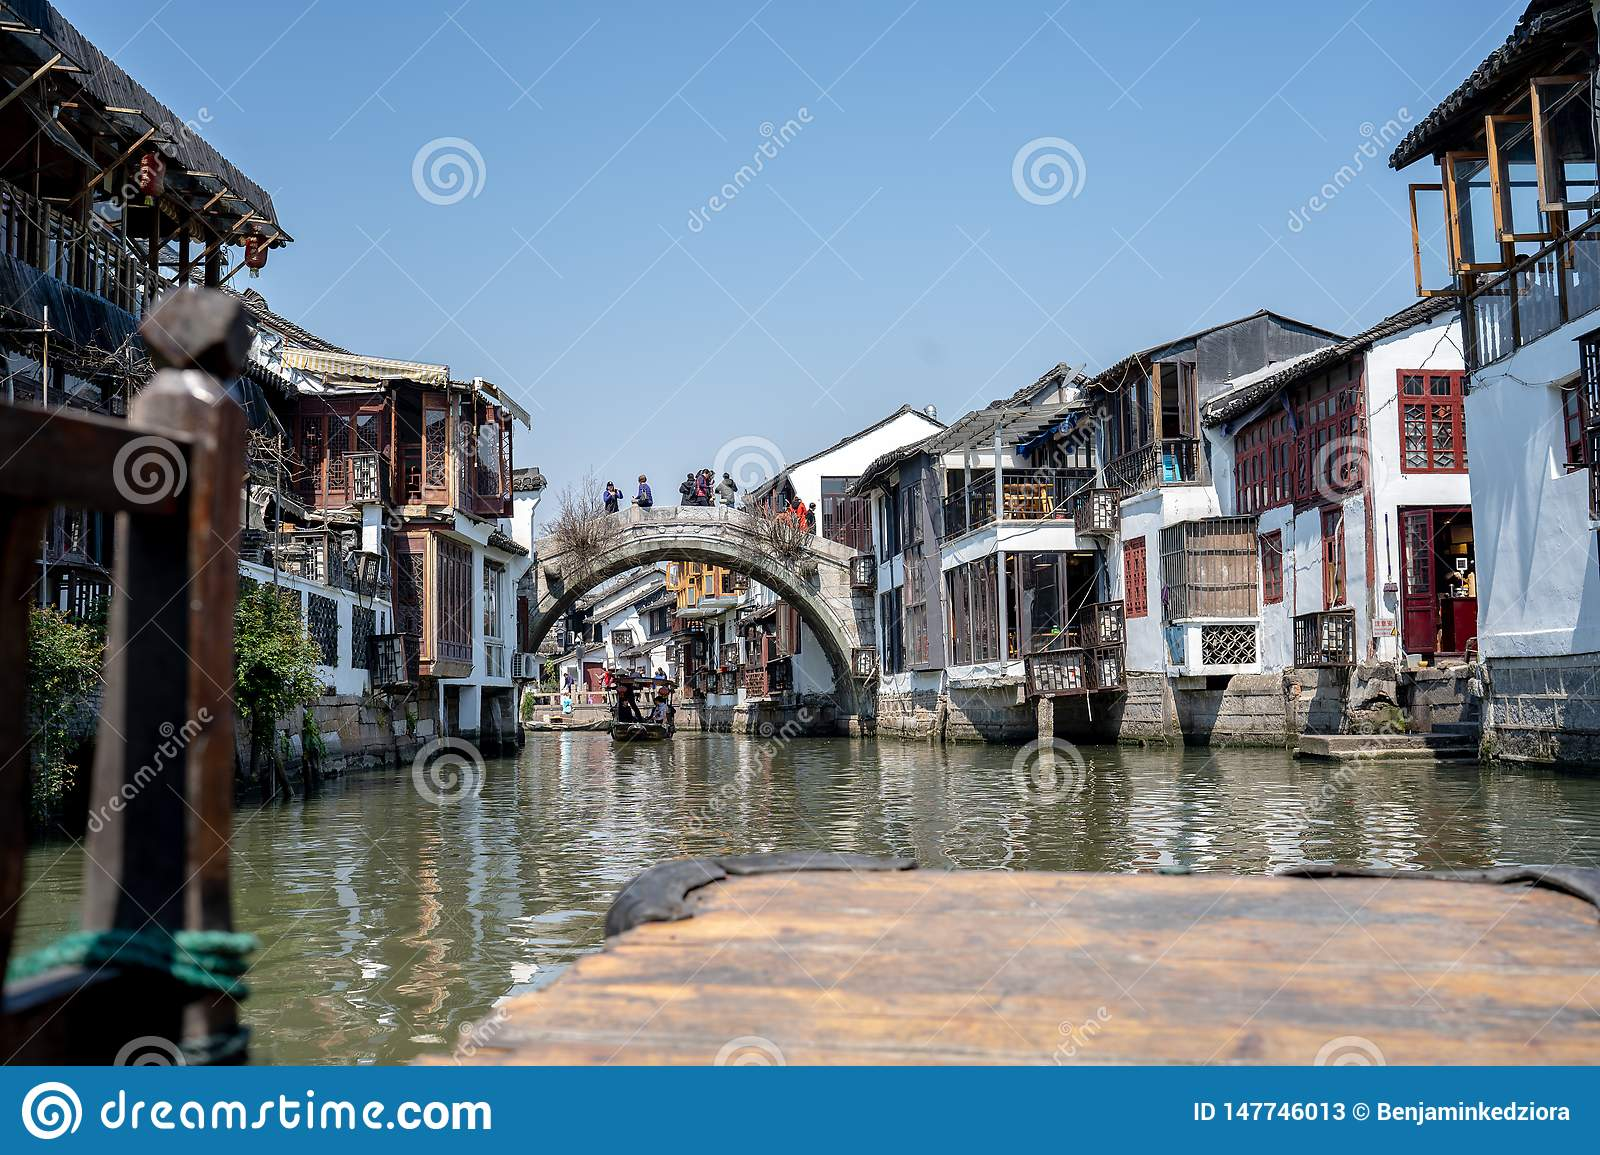 Wonderful View Zhouzhuang Water Town in an old Boat